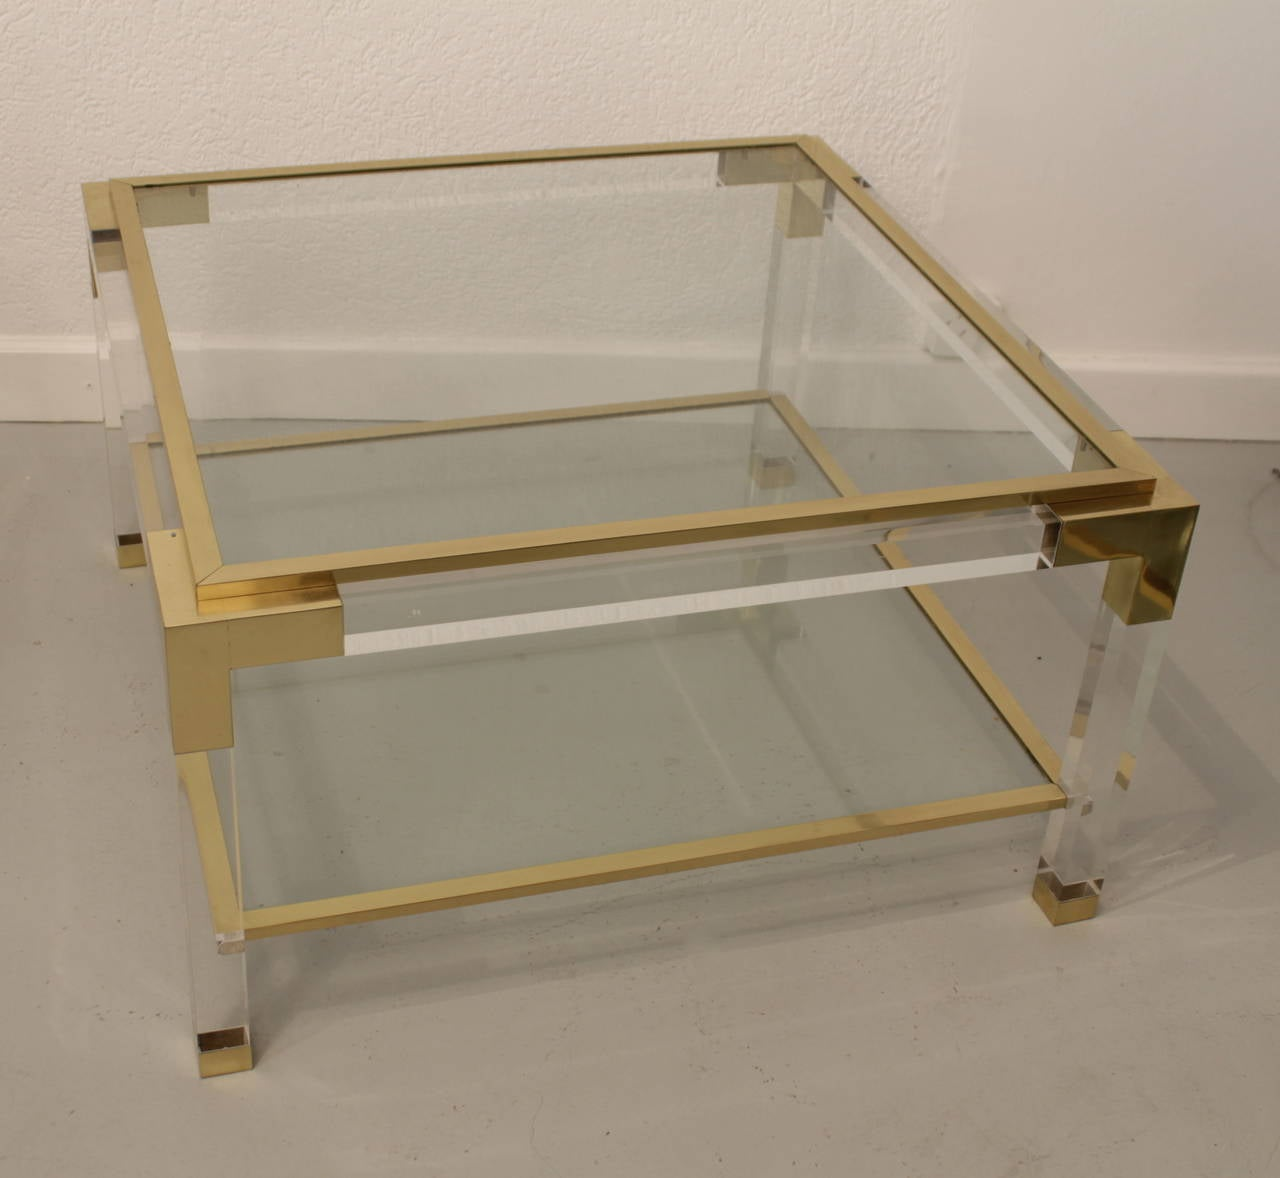 Lucite, brass and glass coffee table, Italy, circa 1970 The top glass is movable and edges are fitted with slip on brass trim. Very good quality.